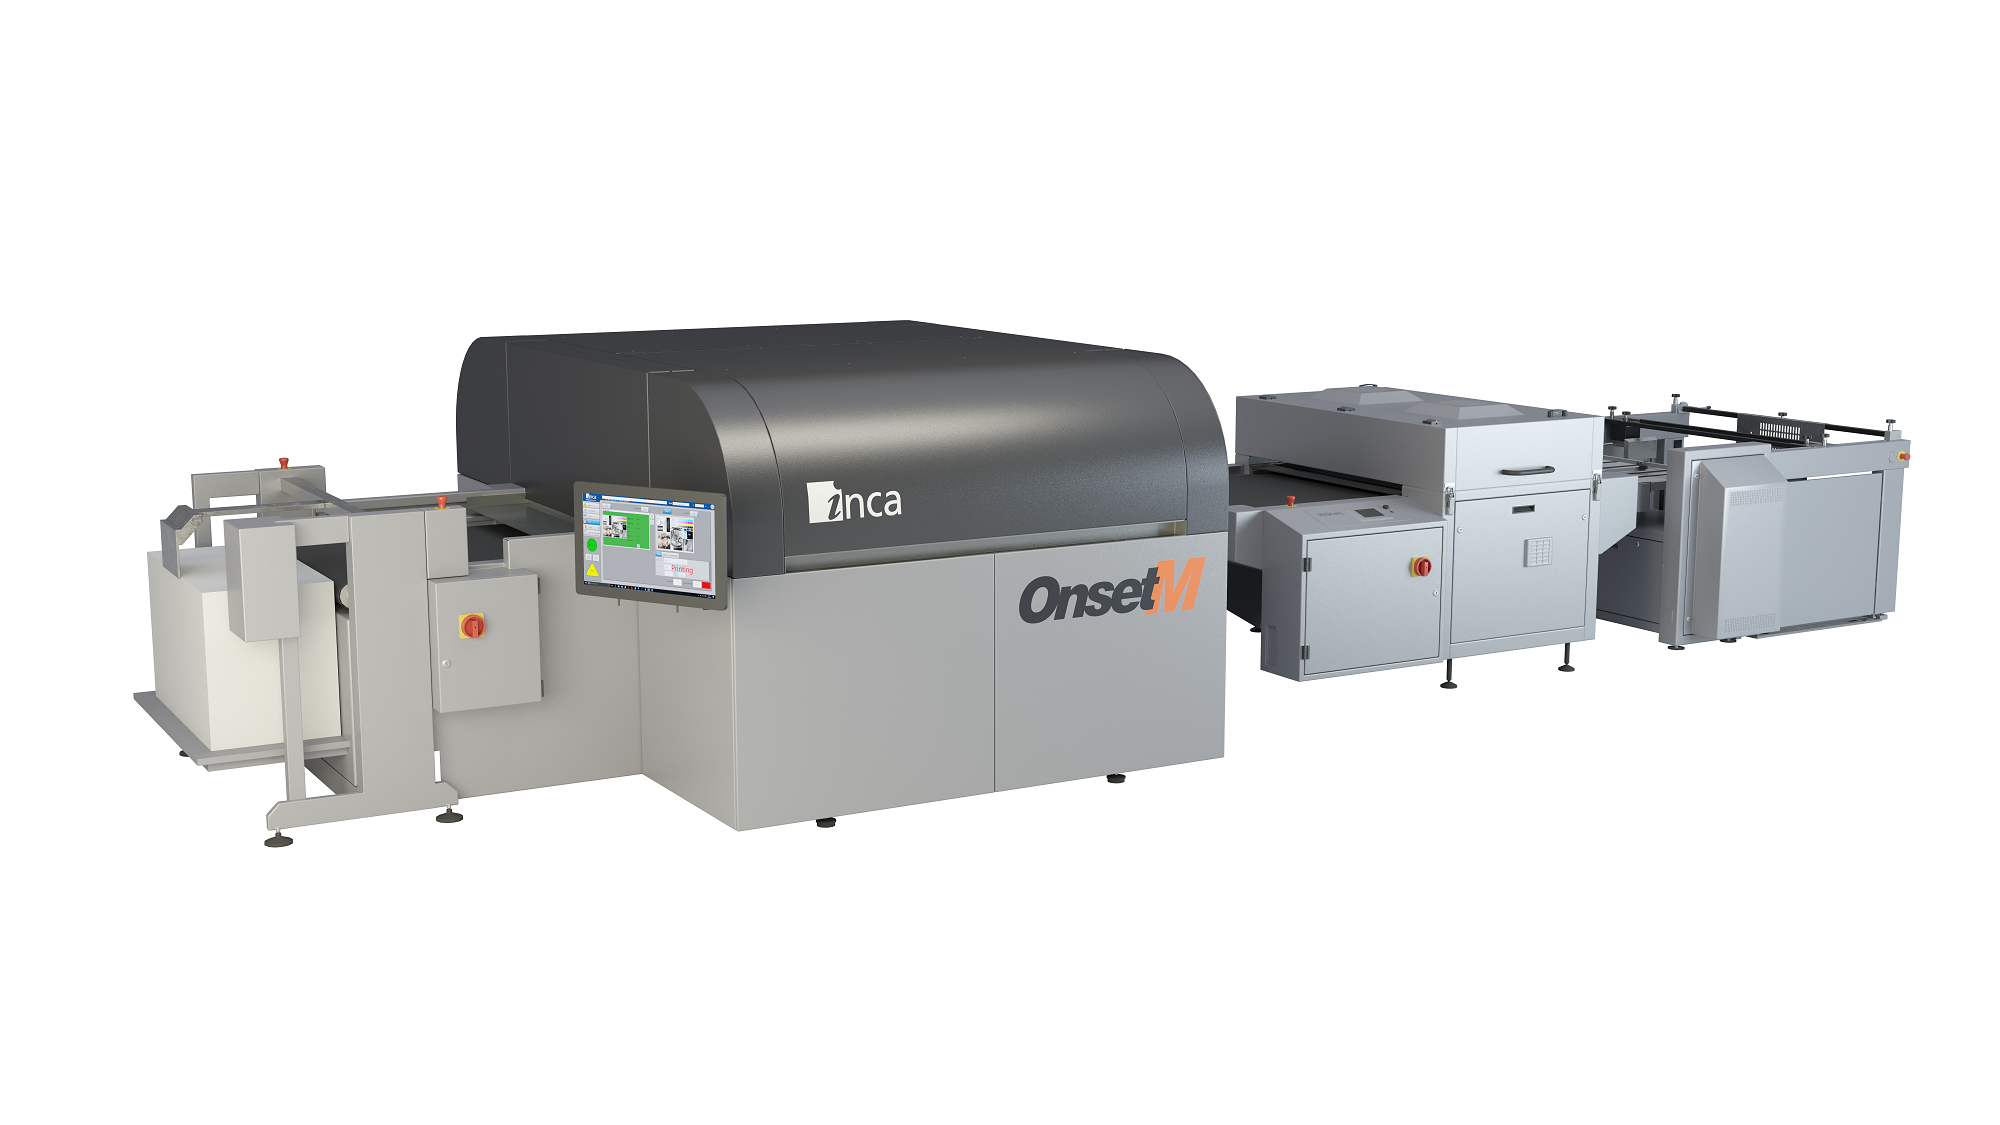 Fujifilm's B1 Format Inkjet Press Inca OnsetM Earns 'Product of the Year' from SGIA